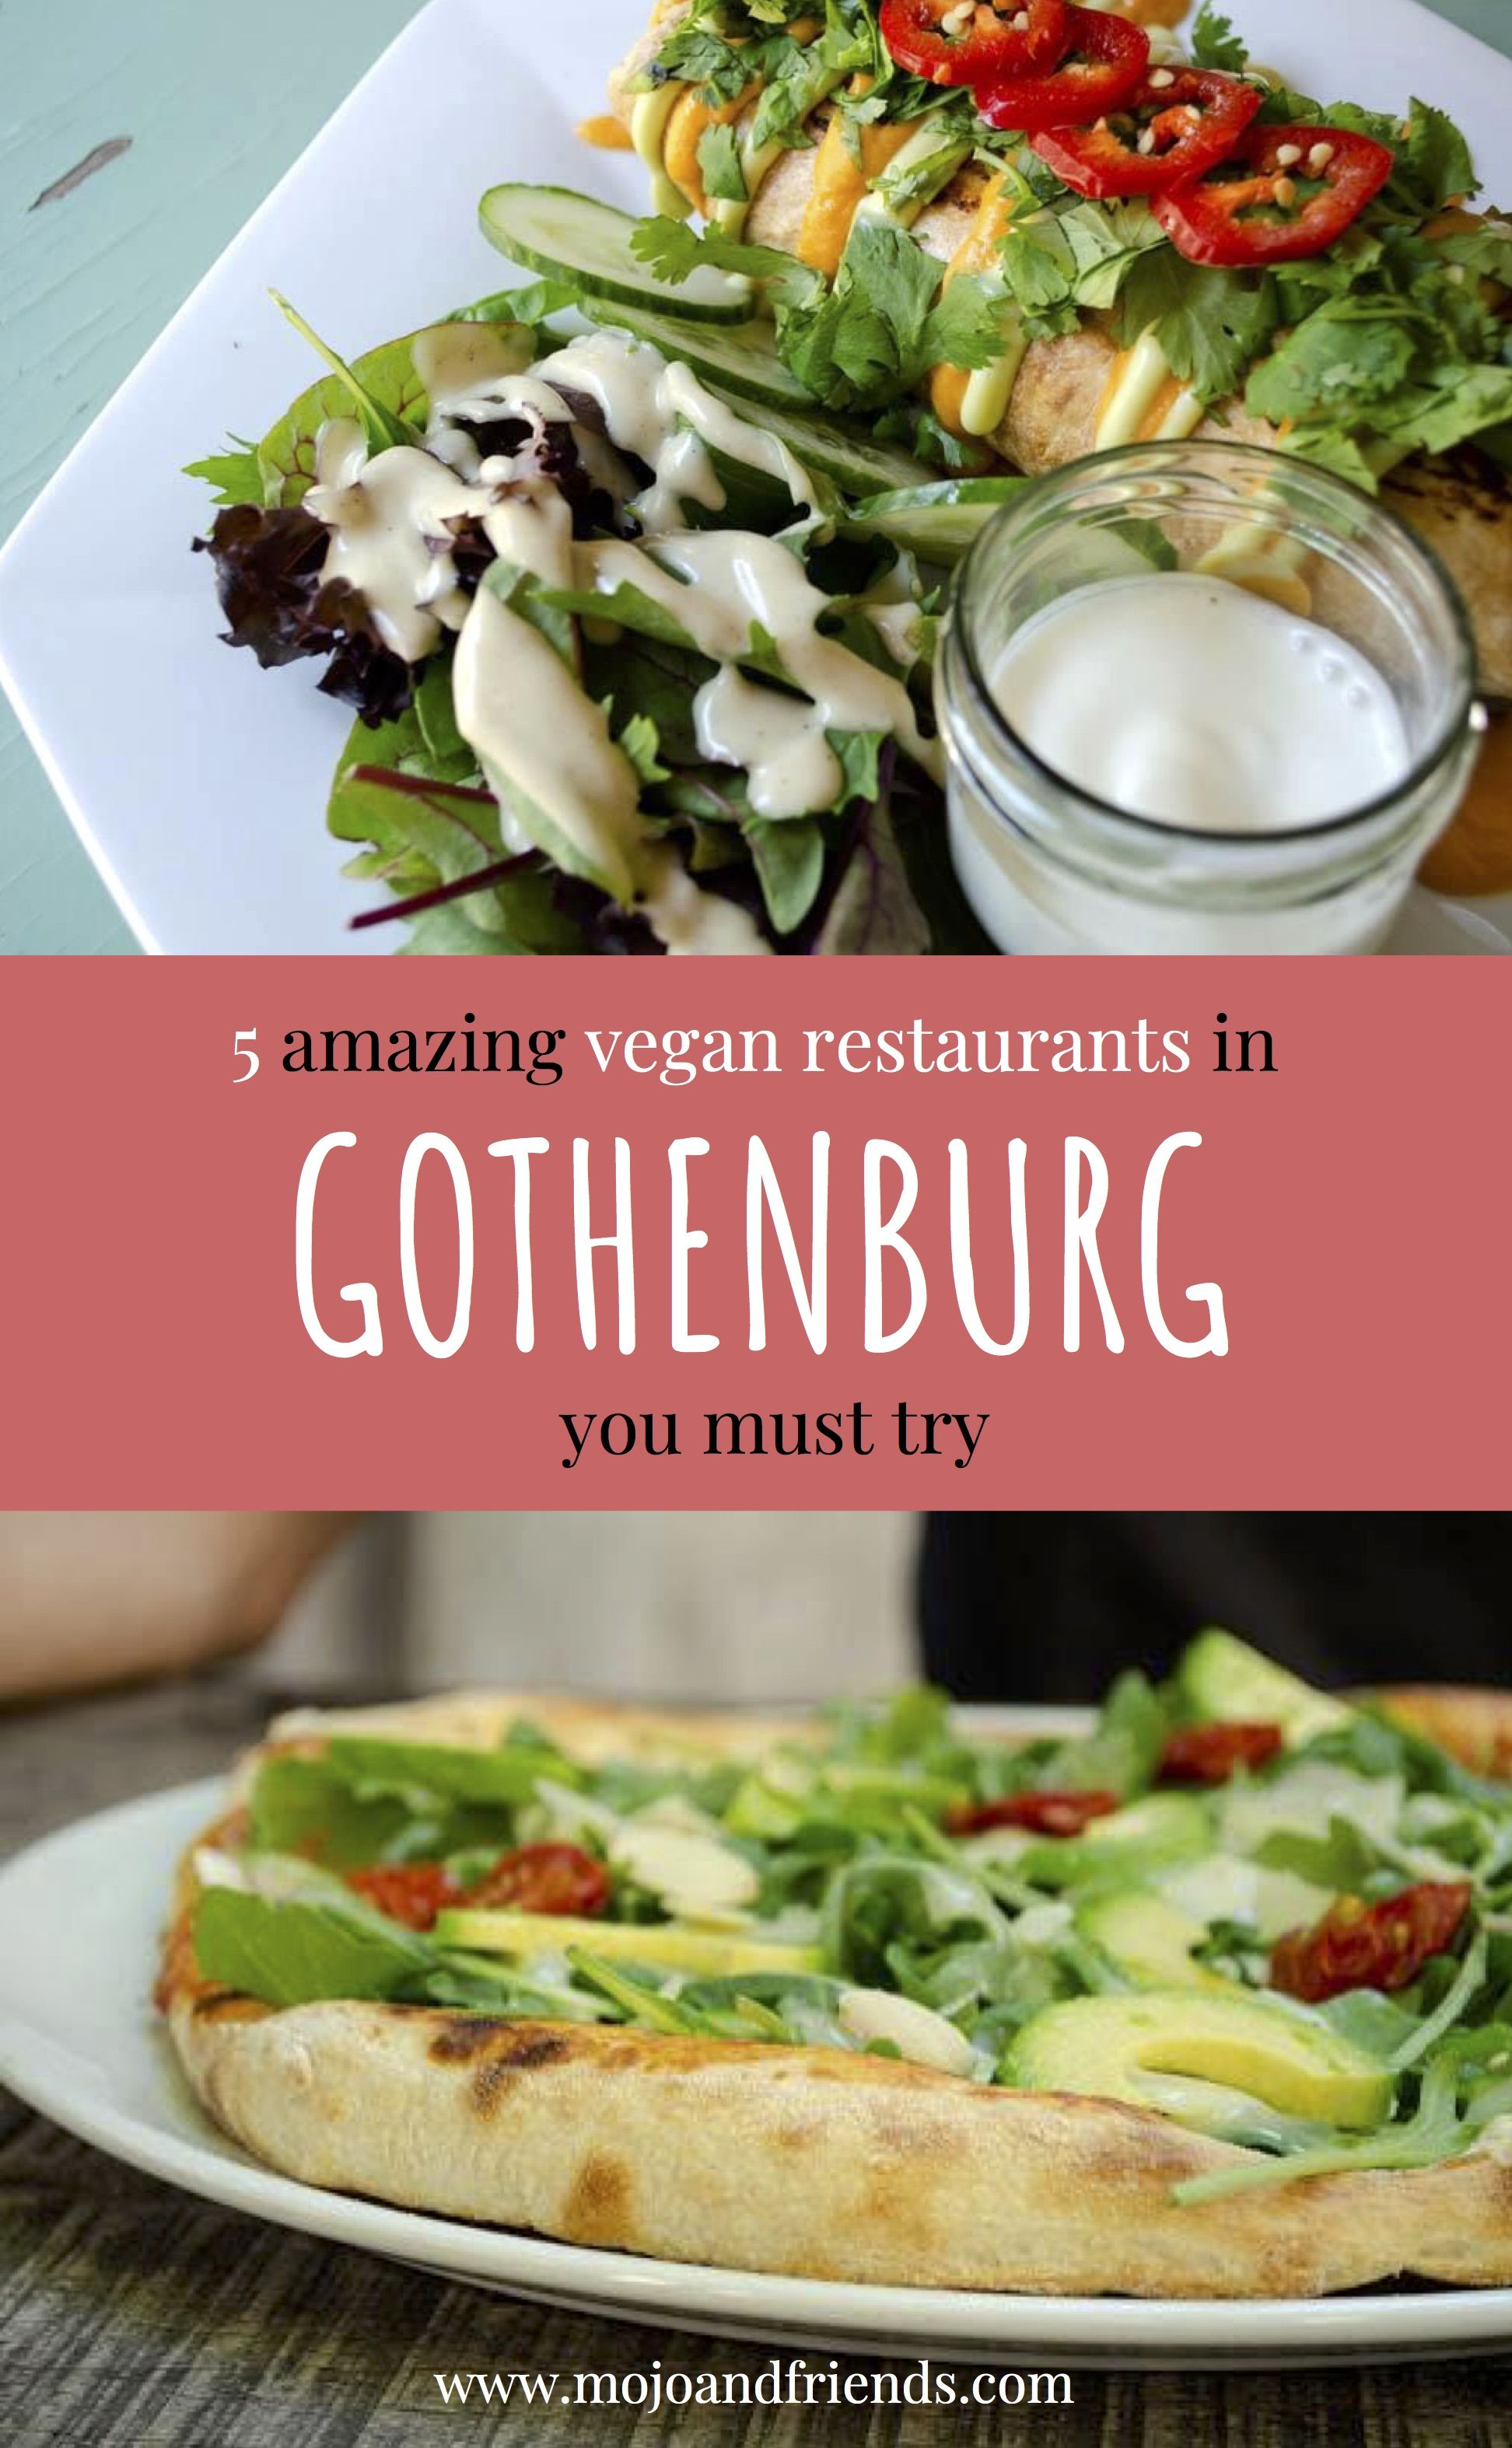 5 Amazing Vegan Restaurants In Gothenburg You Have To Try